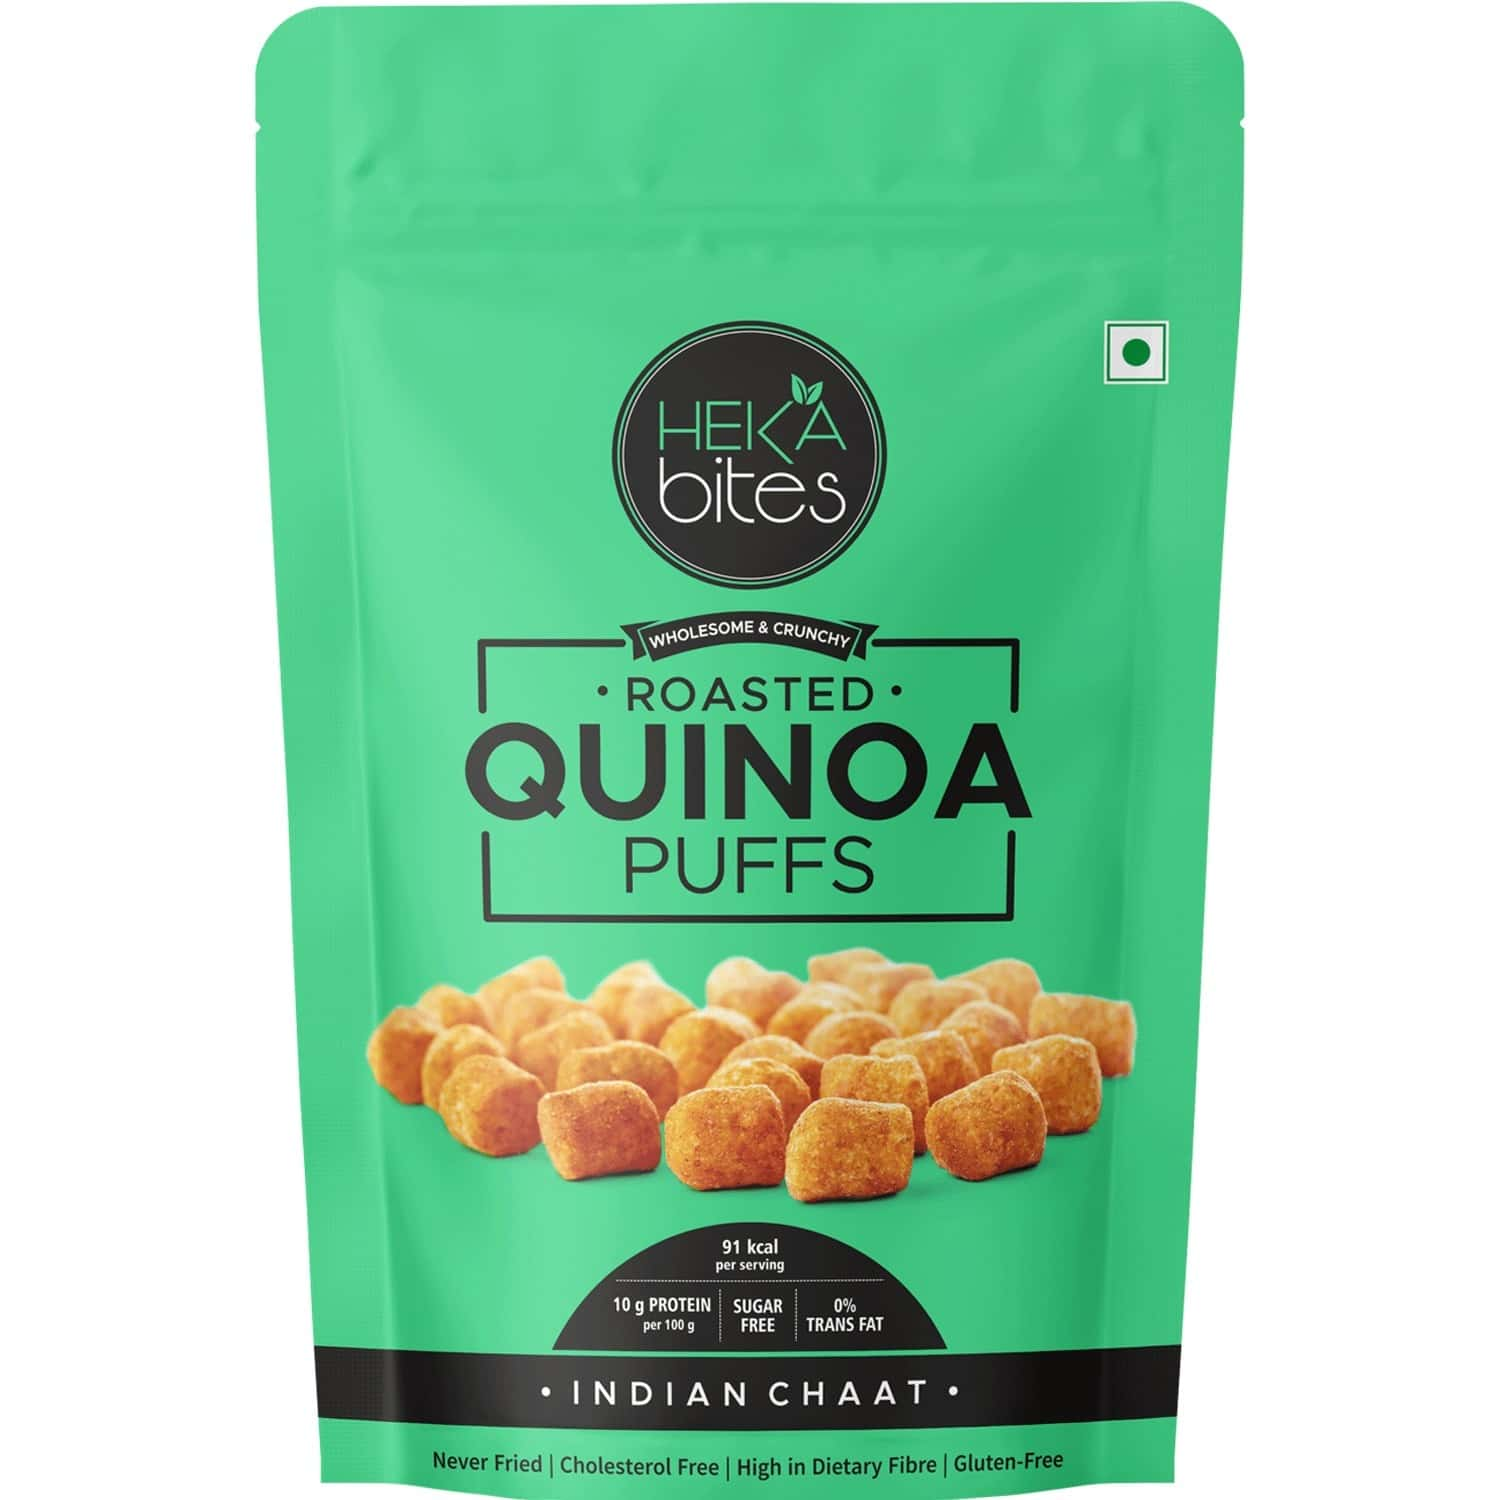 Heka Bites Roasted Quinoa Puffs Indian Chaat -pack Of 2x40g |low Calorie & Healthy Snacks